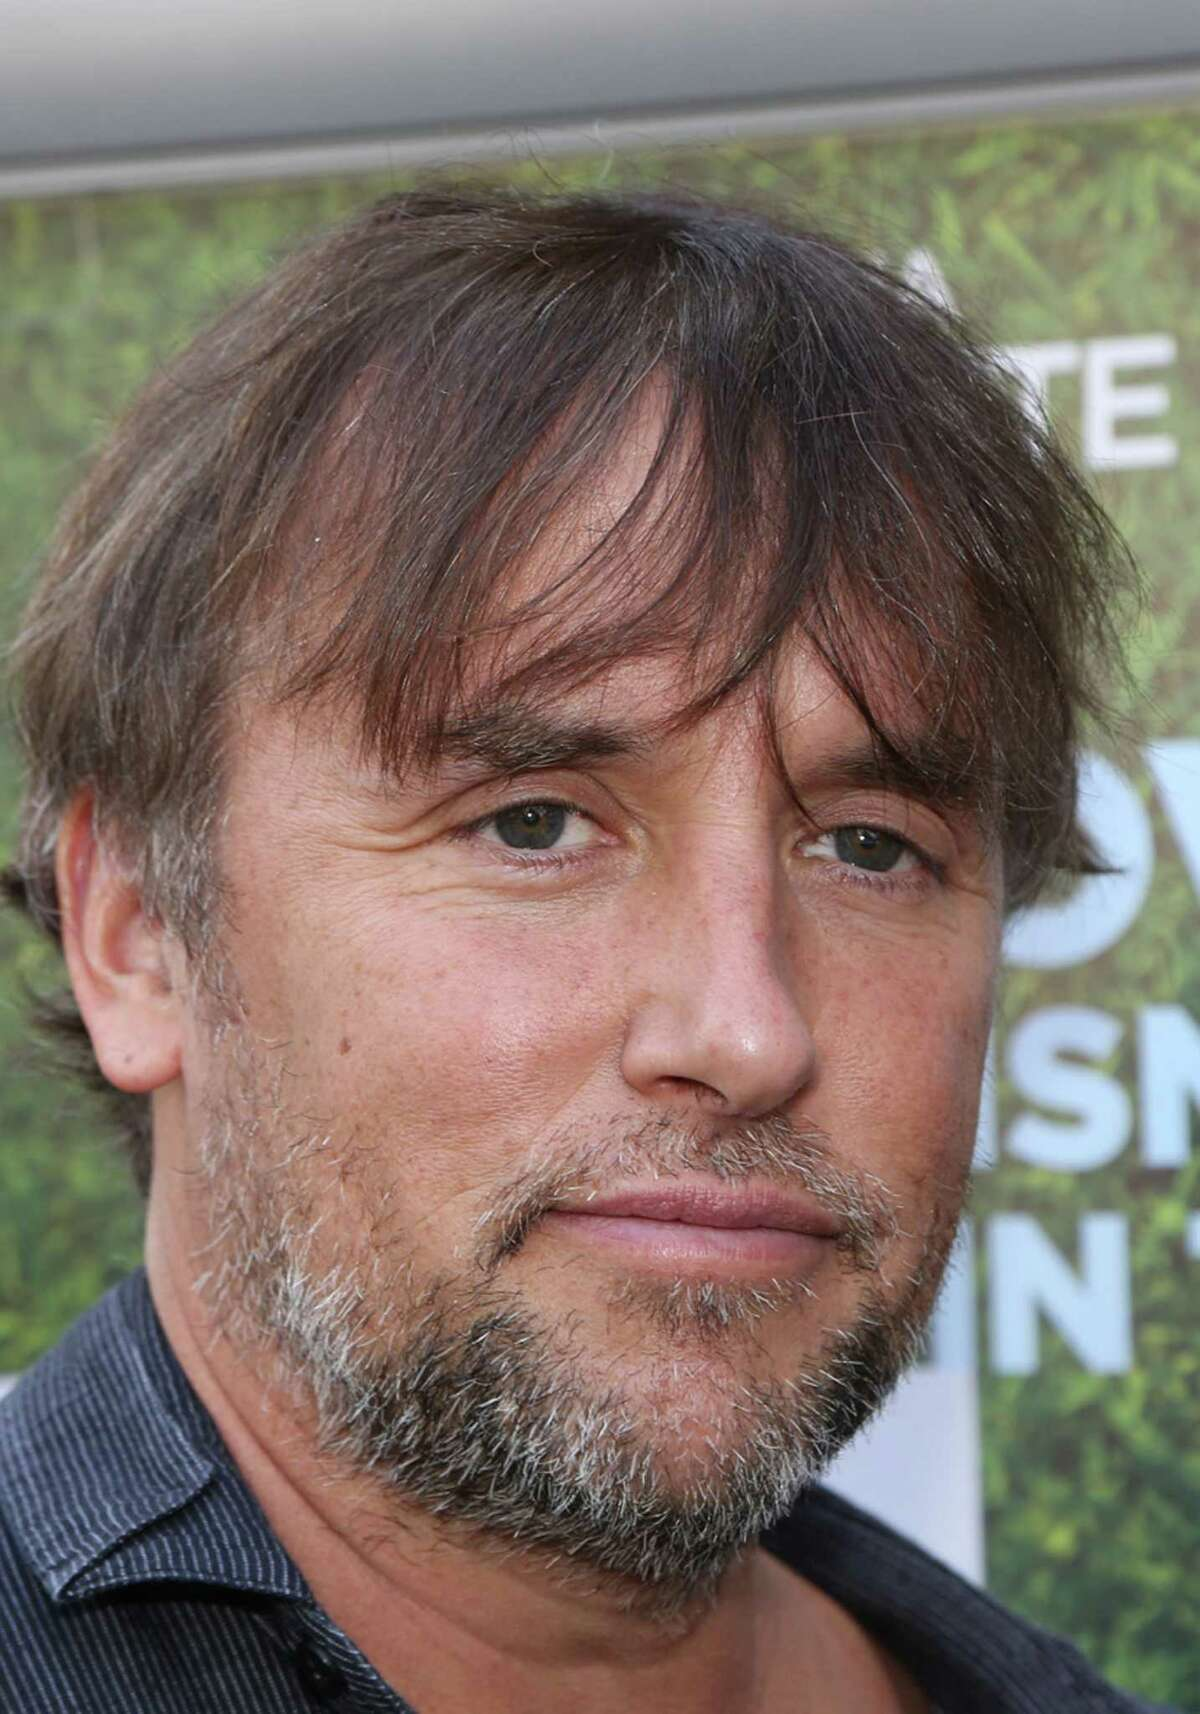 Richard Linklater , who hails from Houston, recieved two major nods at the Golden Globes: his film